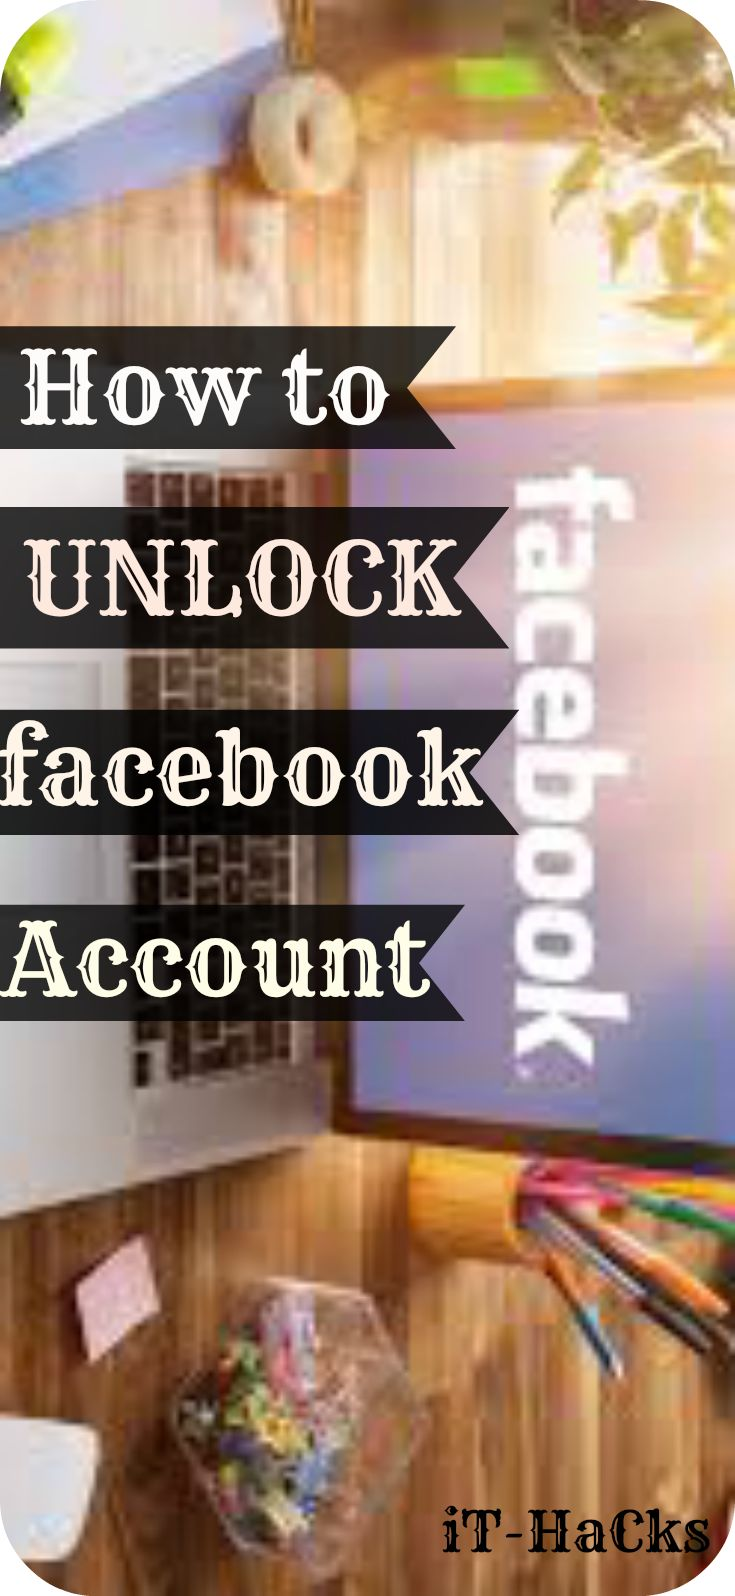 If your account is also temporary locked 🔒...recover/unlock your Facebook account...In order to control fake ID's and cyber stalking Facebook often locked many accounts.